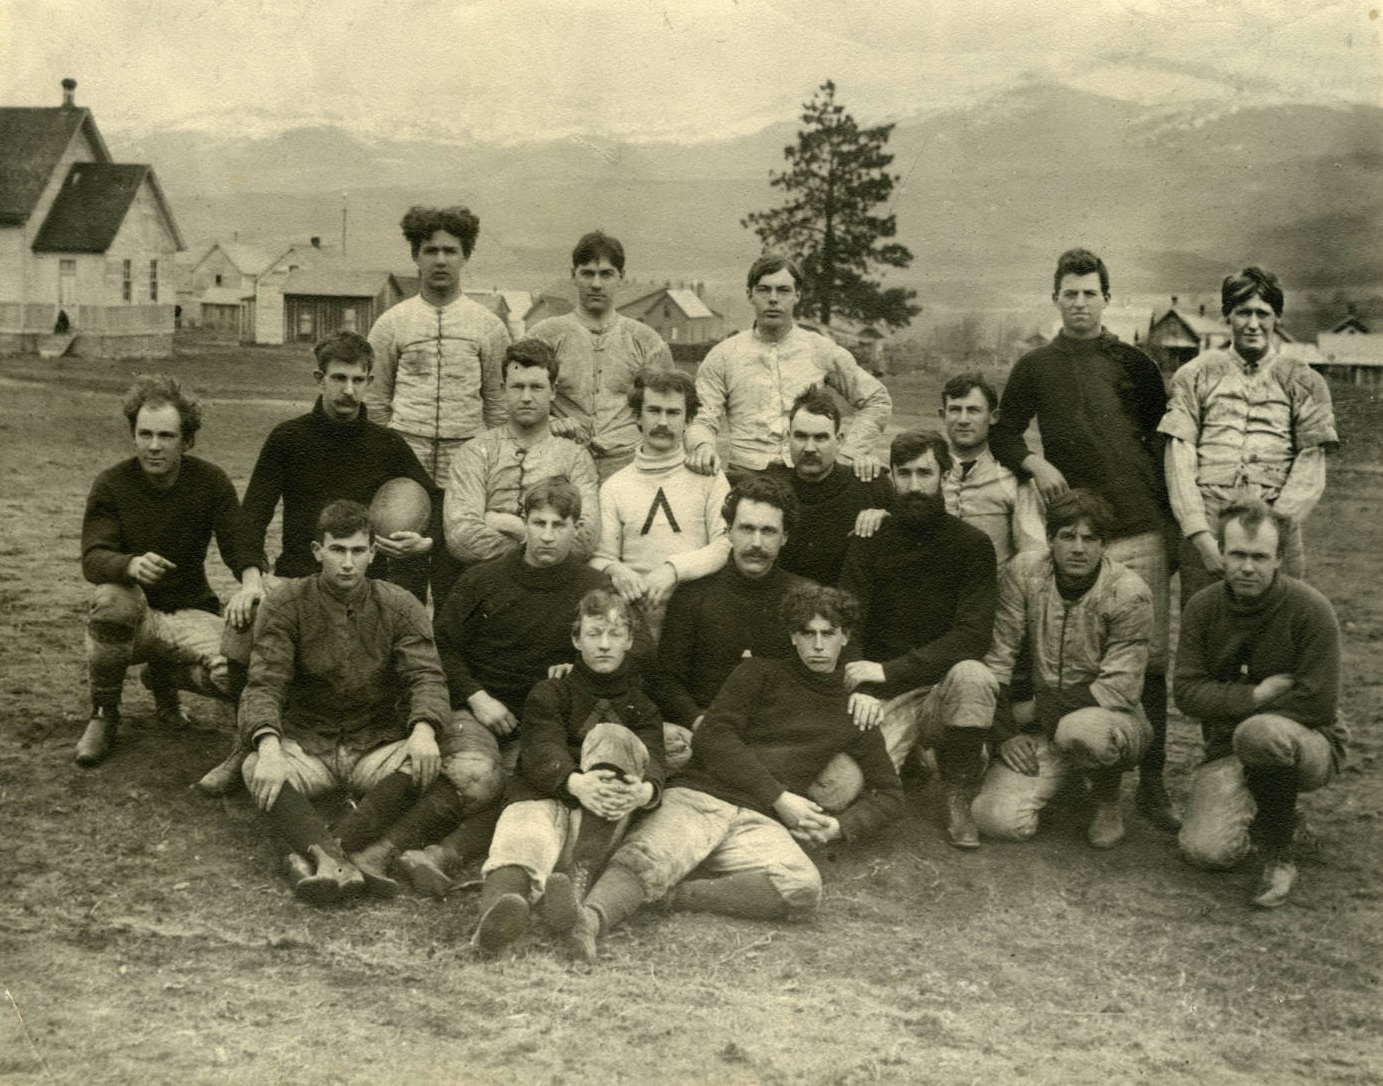 Combined Ashland Town and Normal School Teams 1897--Blaine Klum center, holding knee